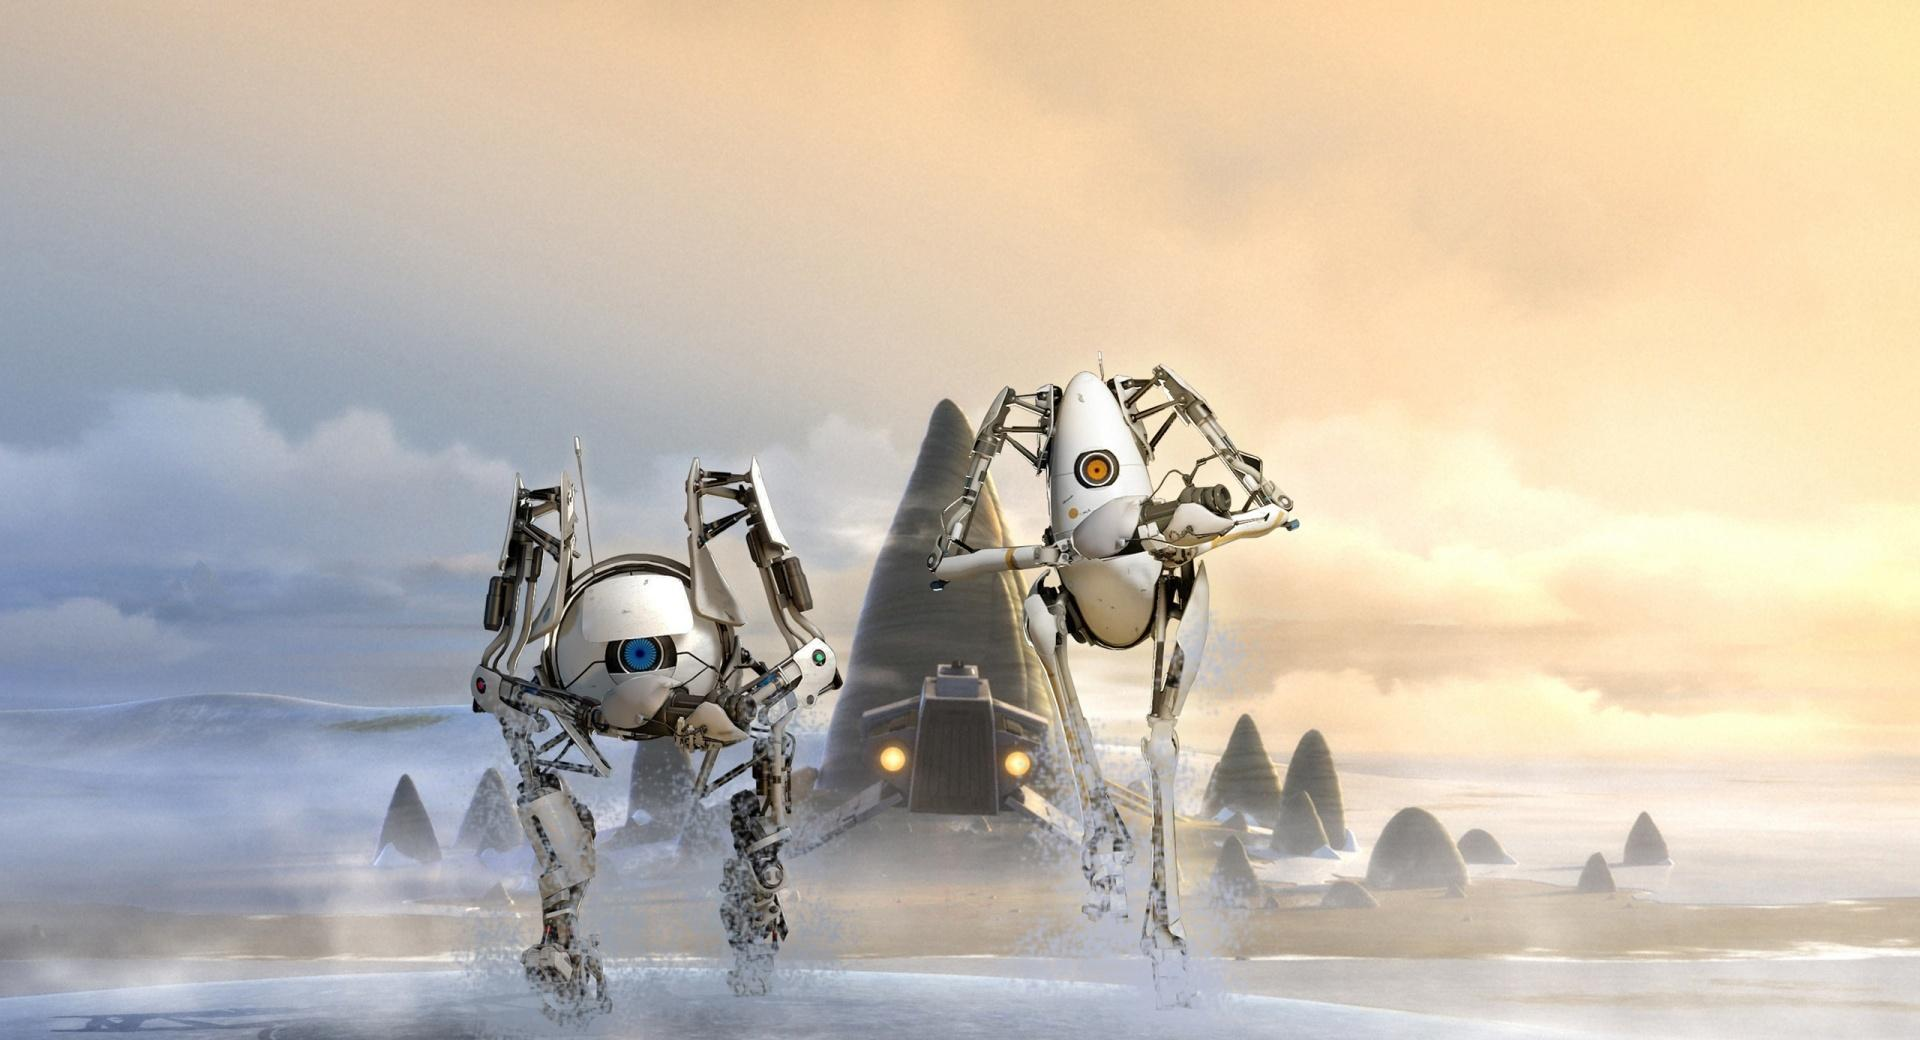 Portal 2 Robots Atlas and P-Body wallpapers HD quality